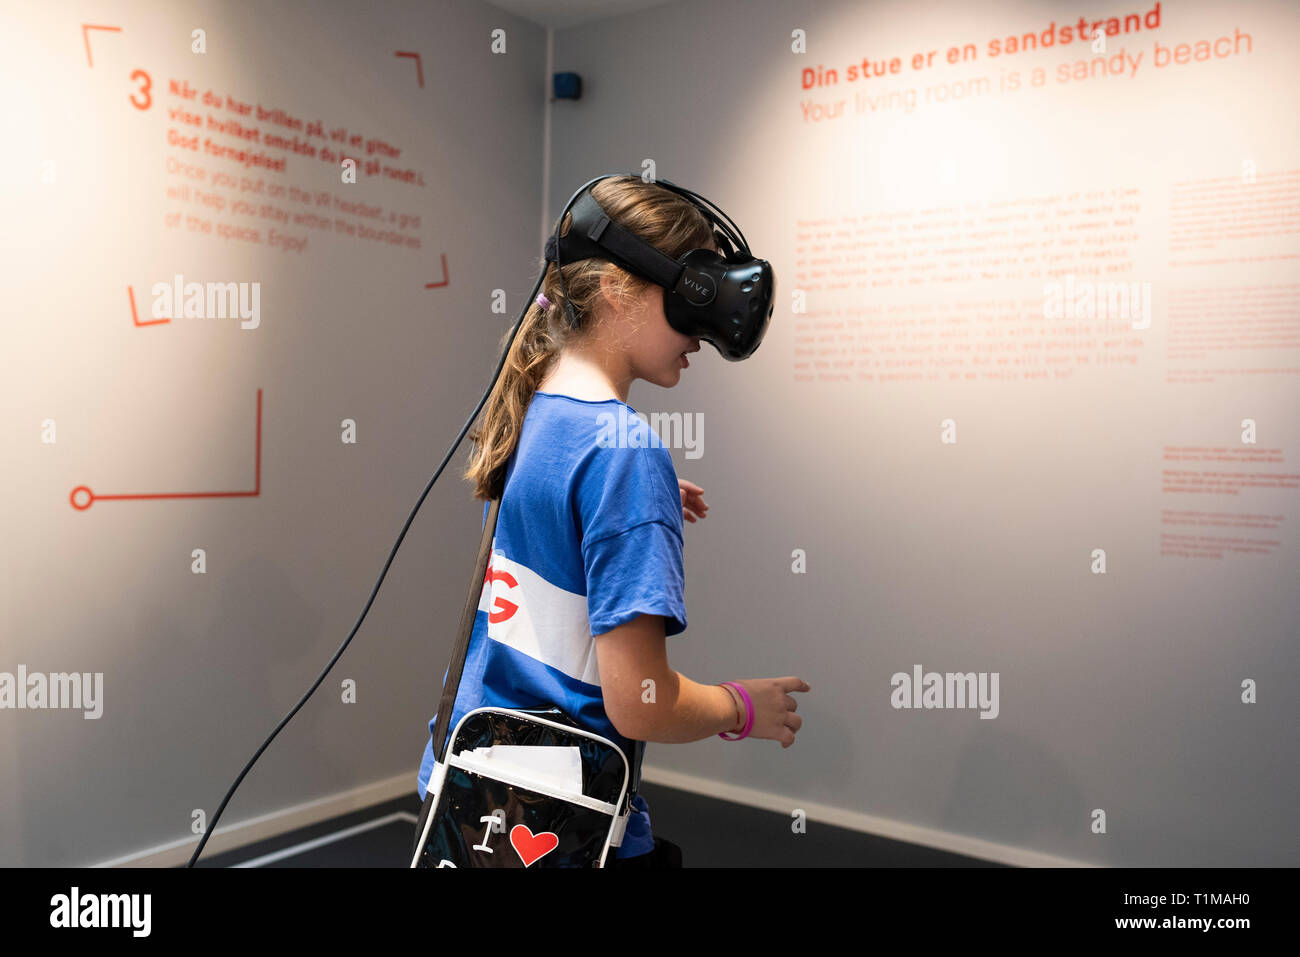 Copenhagen. Denmark. Child using a VR (virtual reality) headset to interact with an exhibit at the Danish Architecture Centre DAC, Bryghuspladsen 10. Stock Photo